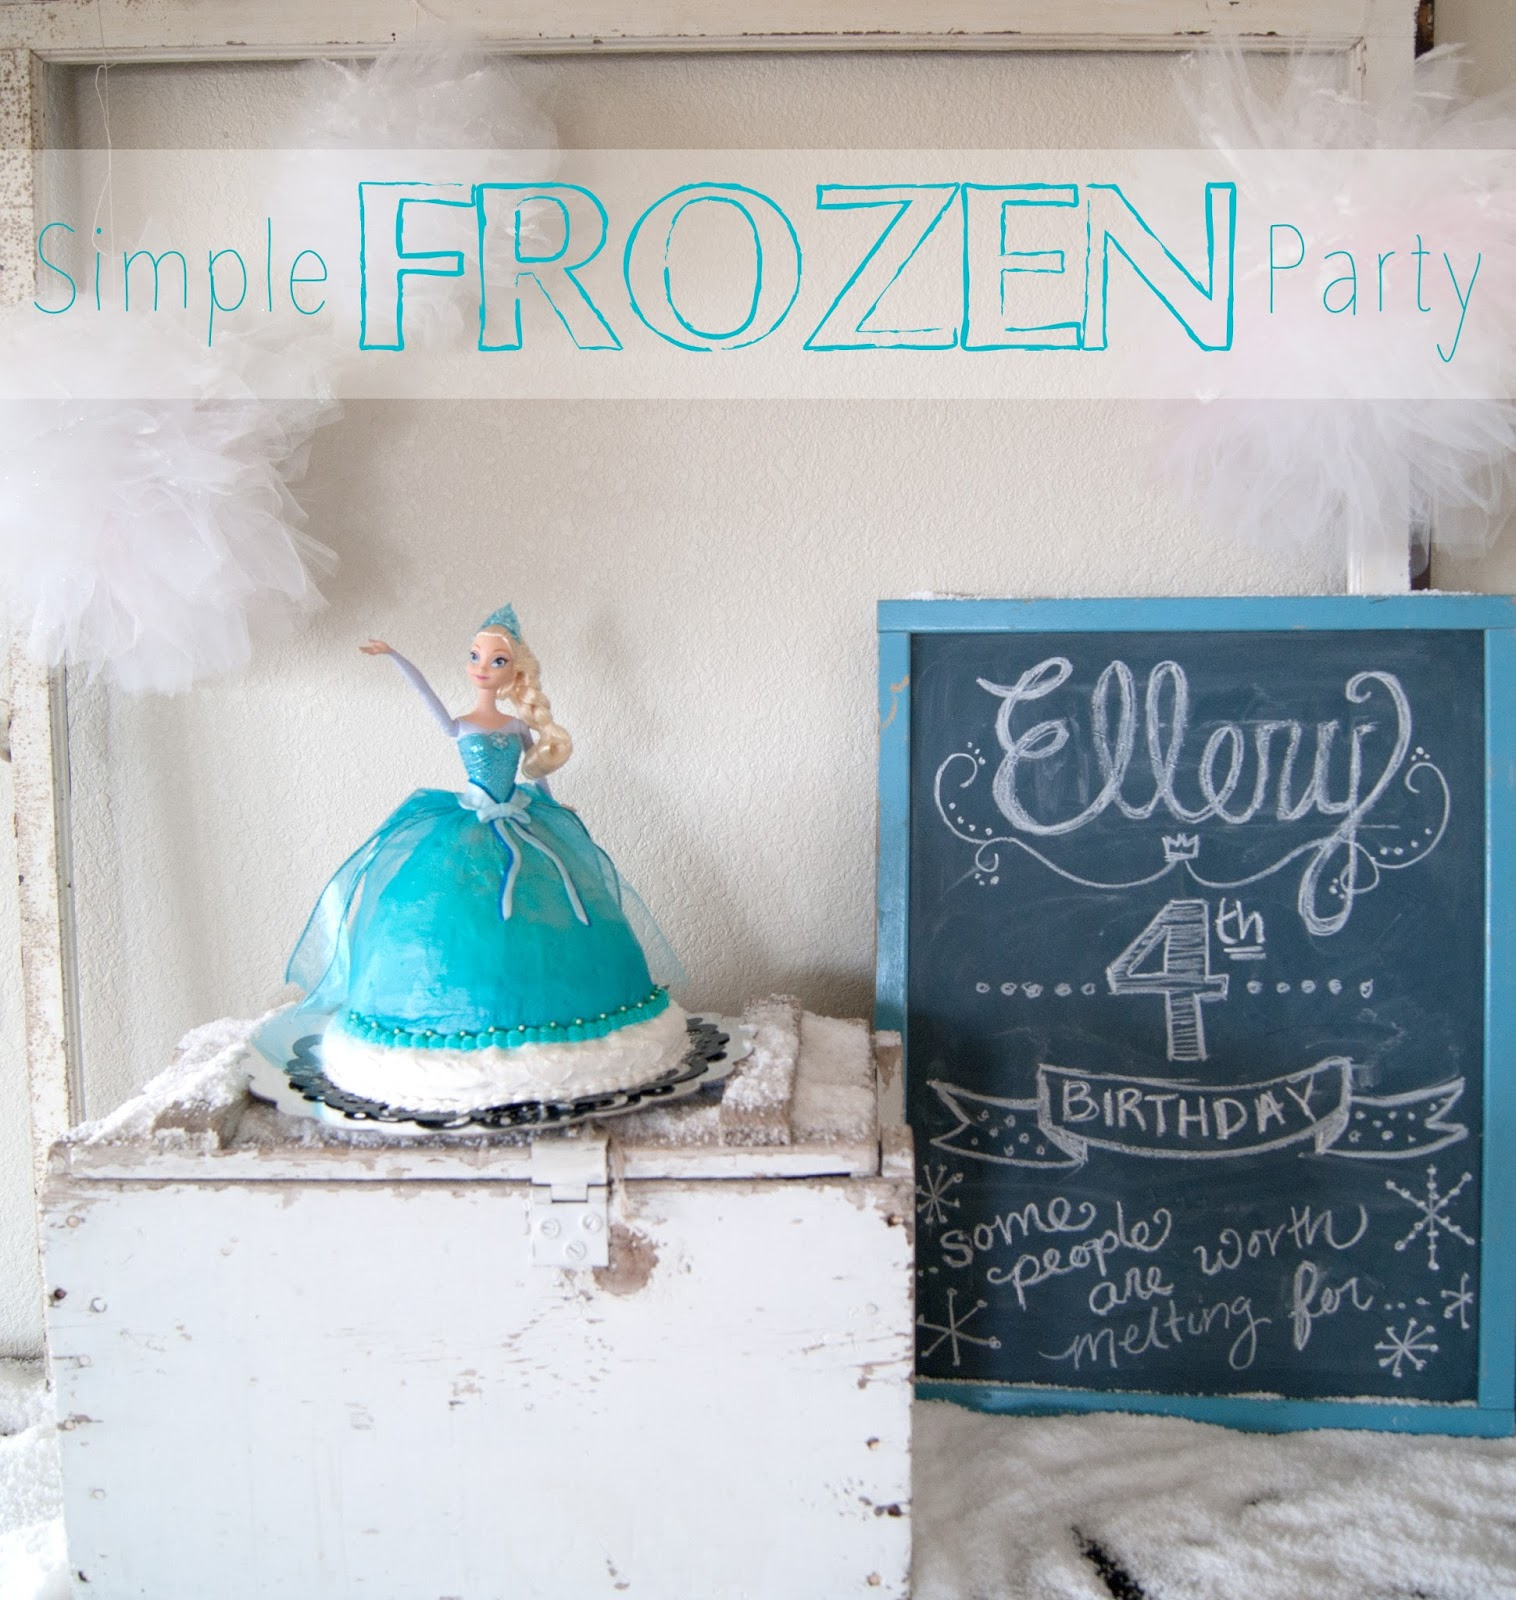 Simple FROZEN Party - birthday party on a budget -